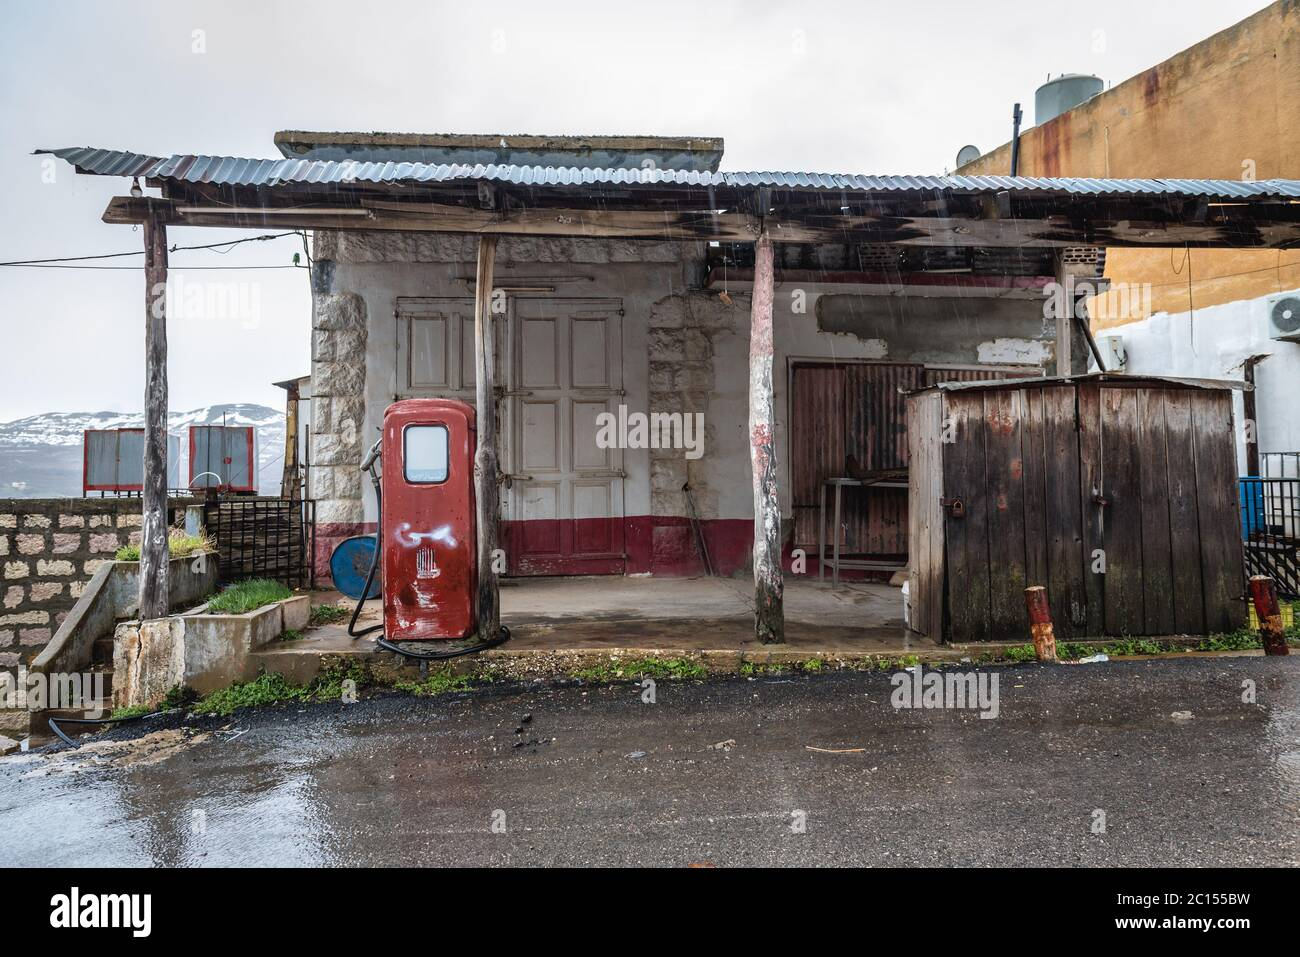 Abandoned Gas Station In North Governorate Of Lebanon Stock Photo Alamy